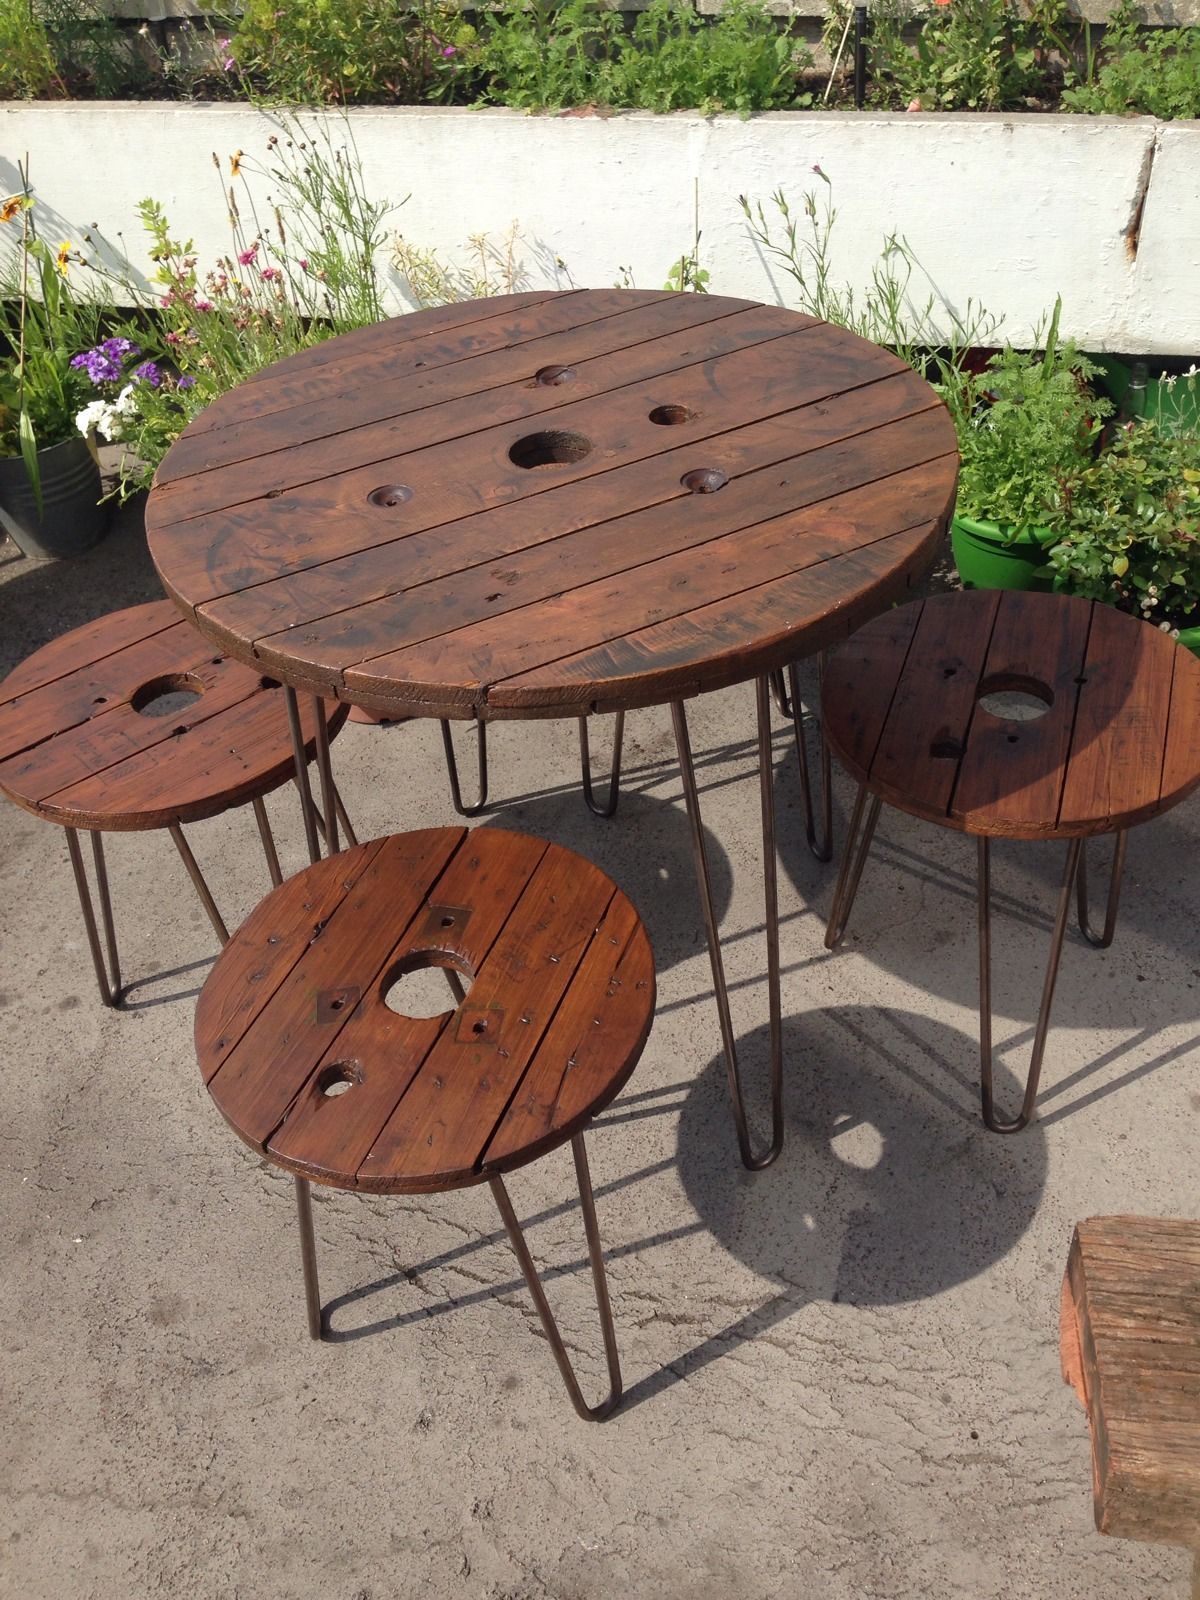 wooden garden furniture set table and stools upcycled